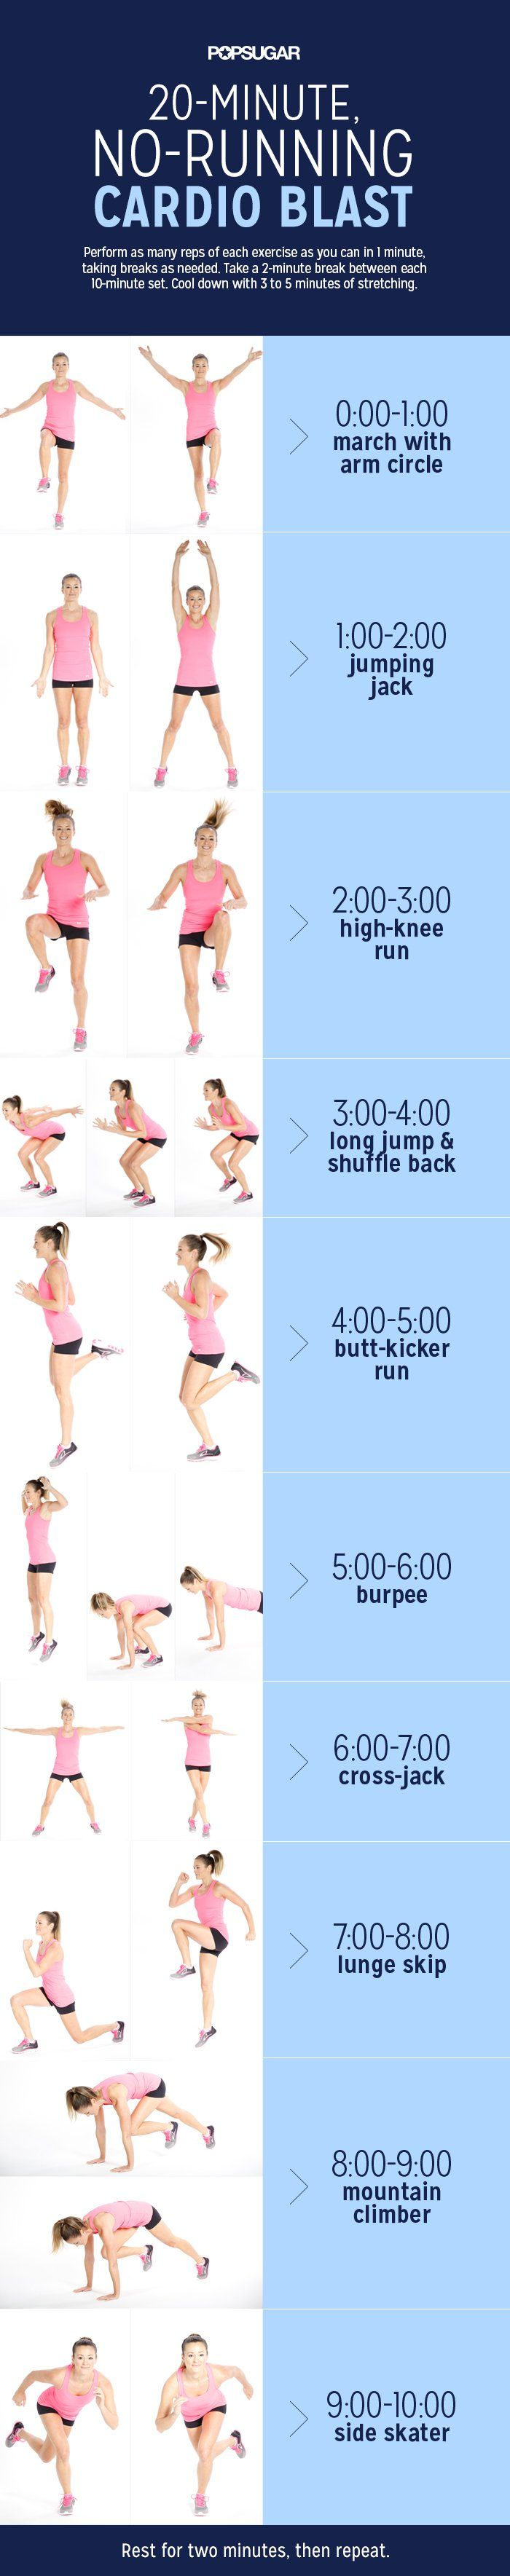 Best 25 home cardio ideas on pinterest cardio at home cardio best 25 home cardio ideas on pinterest cardio at home cardio workouts at home and cardio workouts ccuart Choice Image